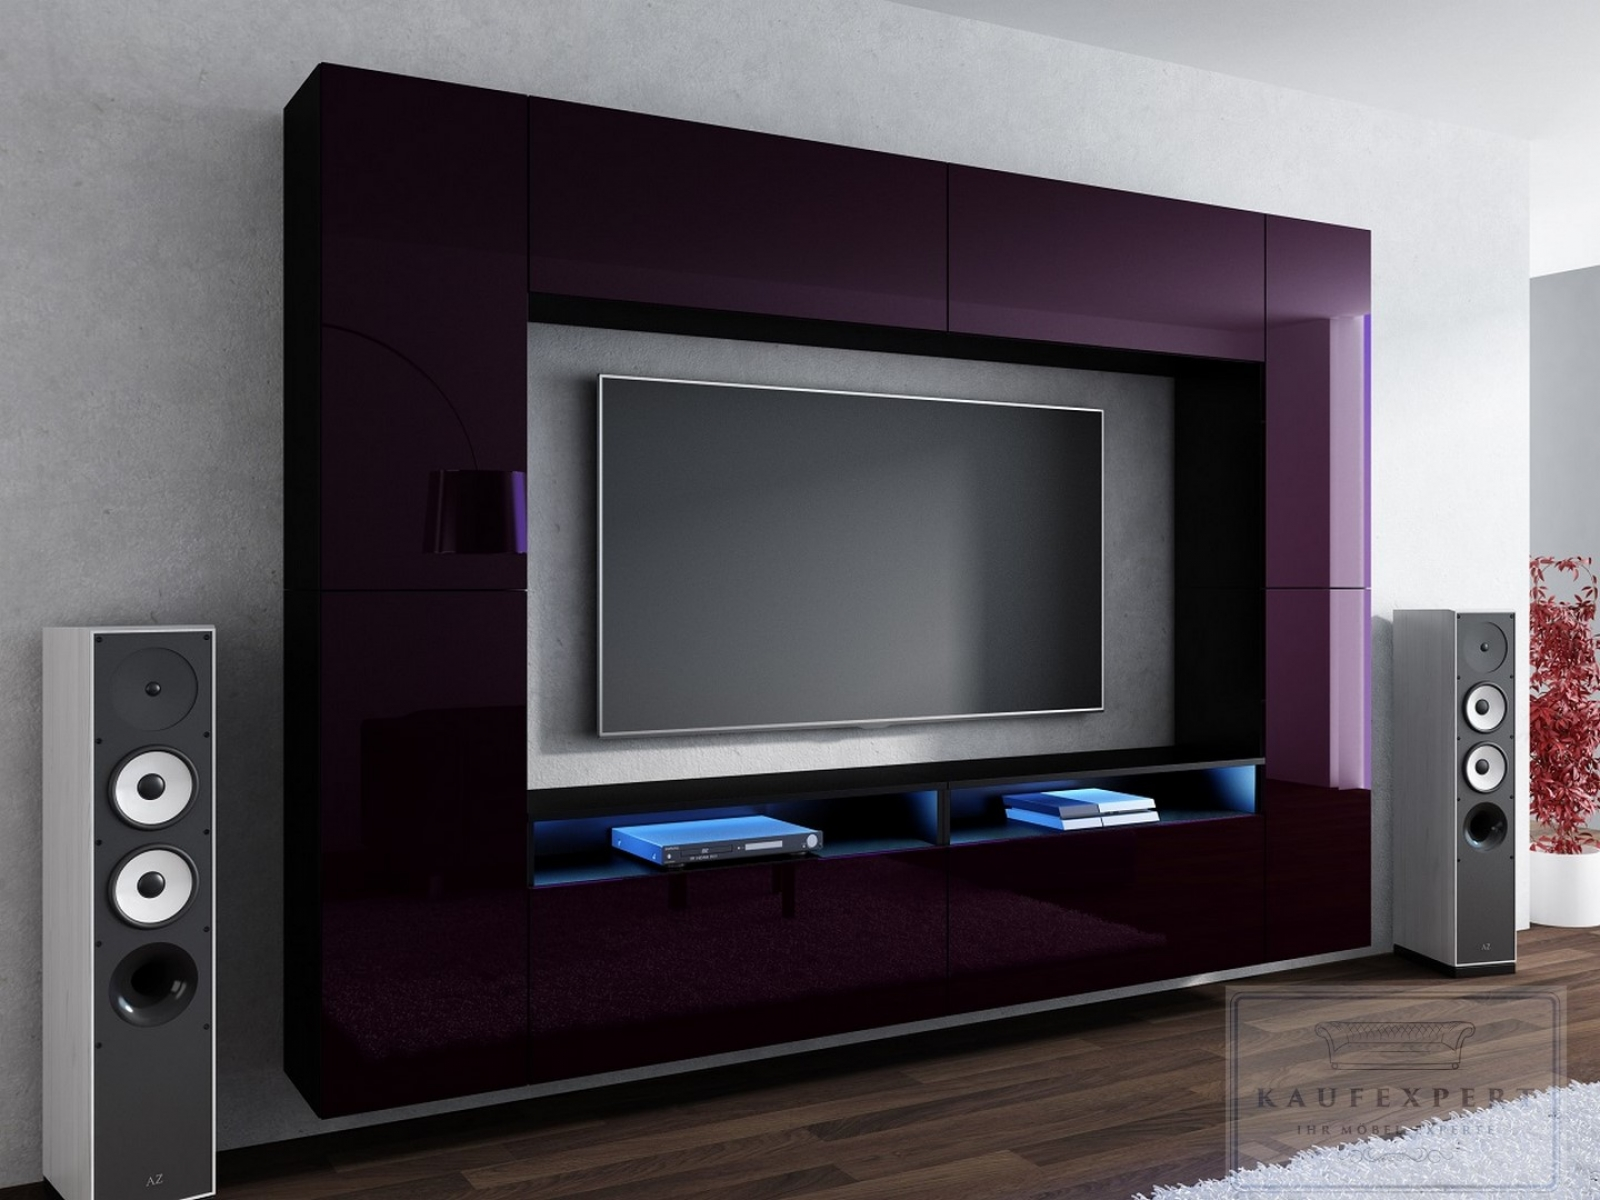 kaufexpert wohnwand cinema aubergine hochglanz schwarz 280 cm mediawand medienwand design. Black Bedroom Furniture Sets. Home Design Ideas